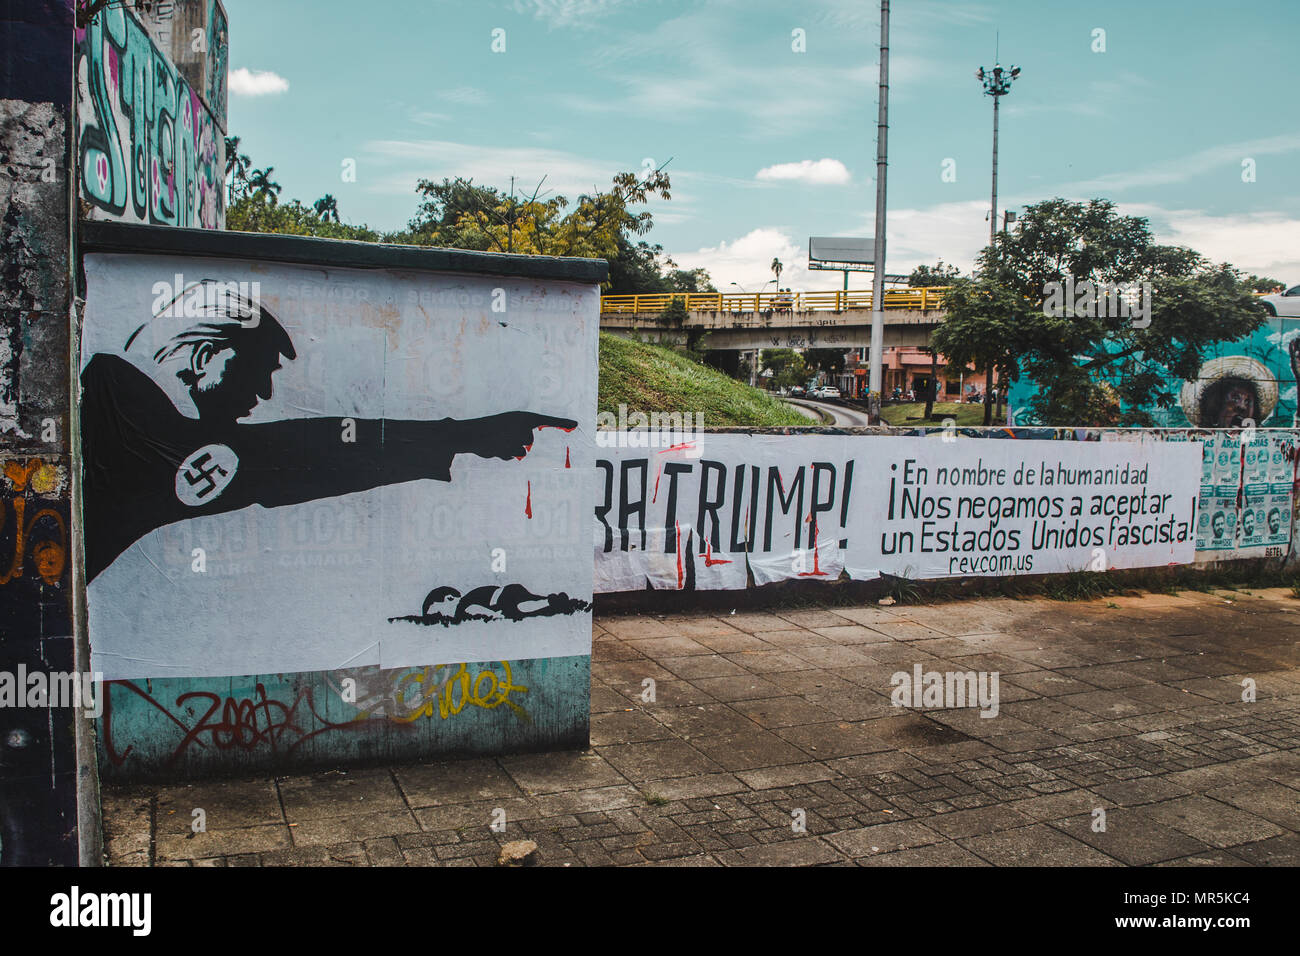 Anti-Trump graffiti on a wall in Cali, Colombia, that reads in Spanish, 'In the name of humanity, we refuse to accept a fascist United States' - Stock Image